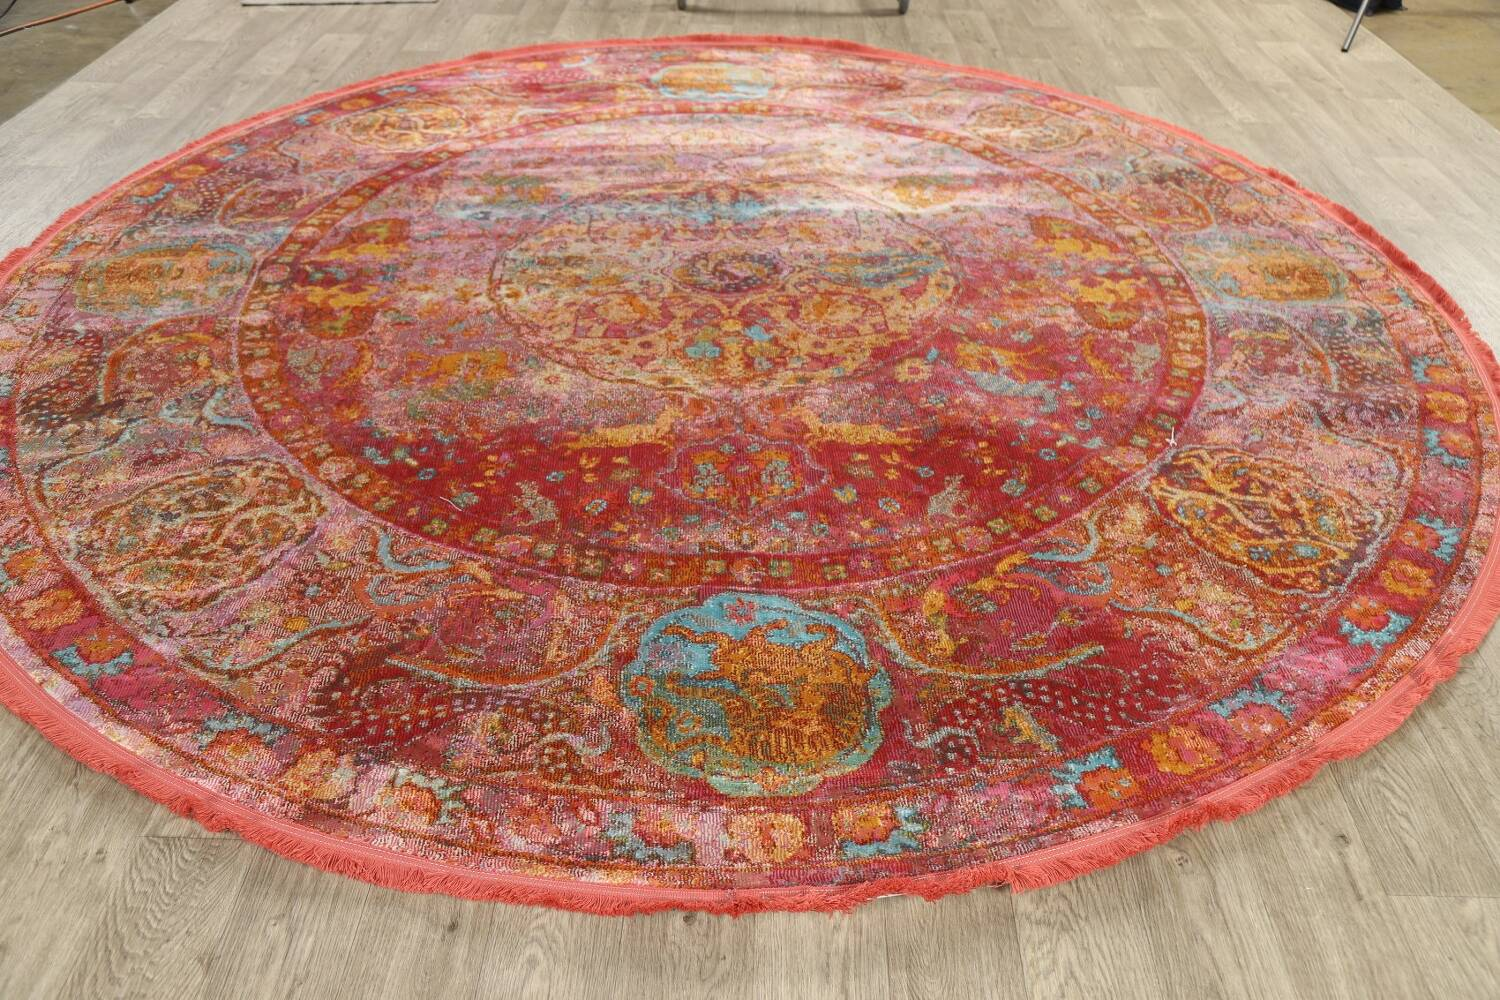 Hunting Design Pictorial Distressed Heat-Set Area Rugs image 18